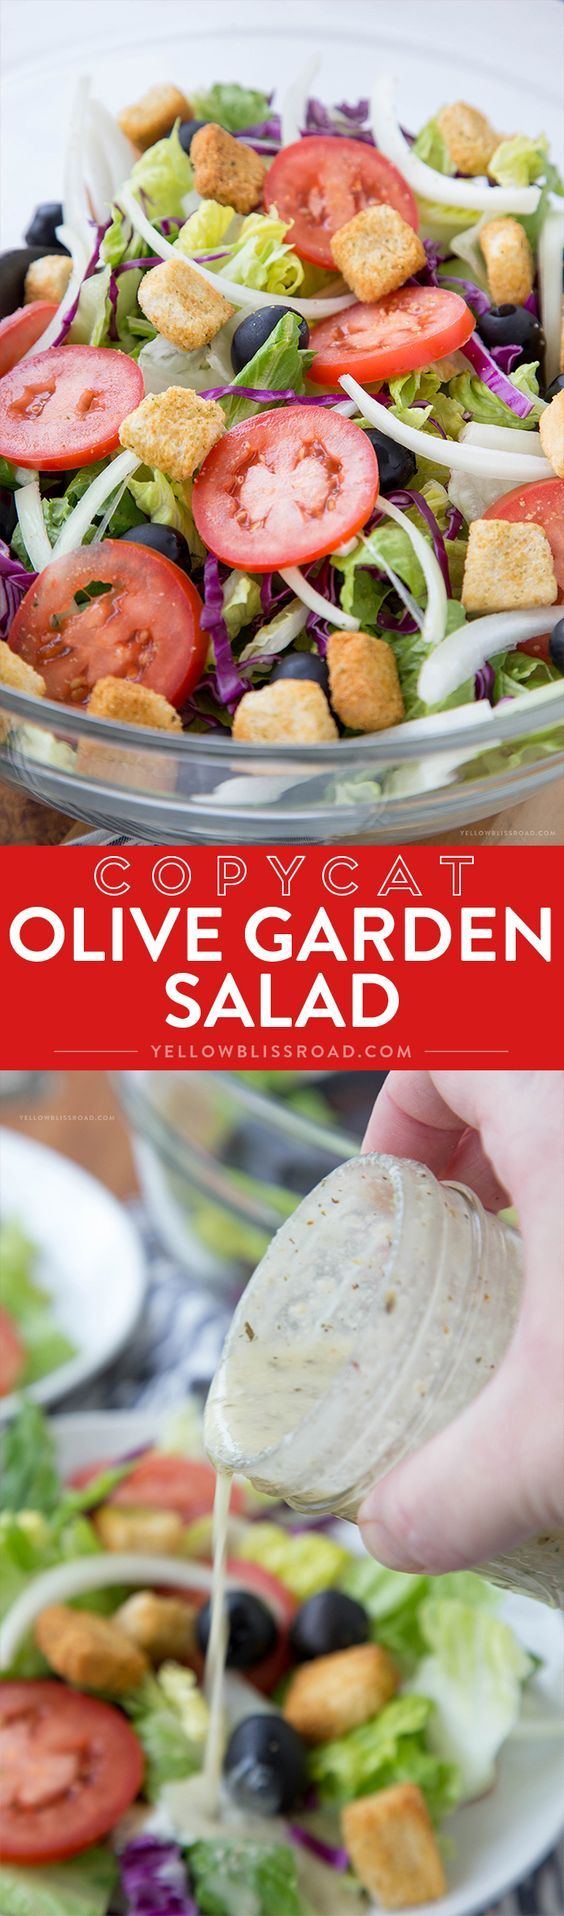 Copycat Olive Garden Salad ~ crisp lettuce, olives, tomatoes and croutons coated in a creamy, cheesy vinaigrette that is nearly identical to Olive Garden Dressing!